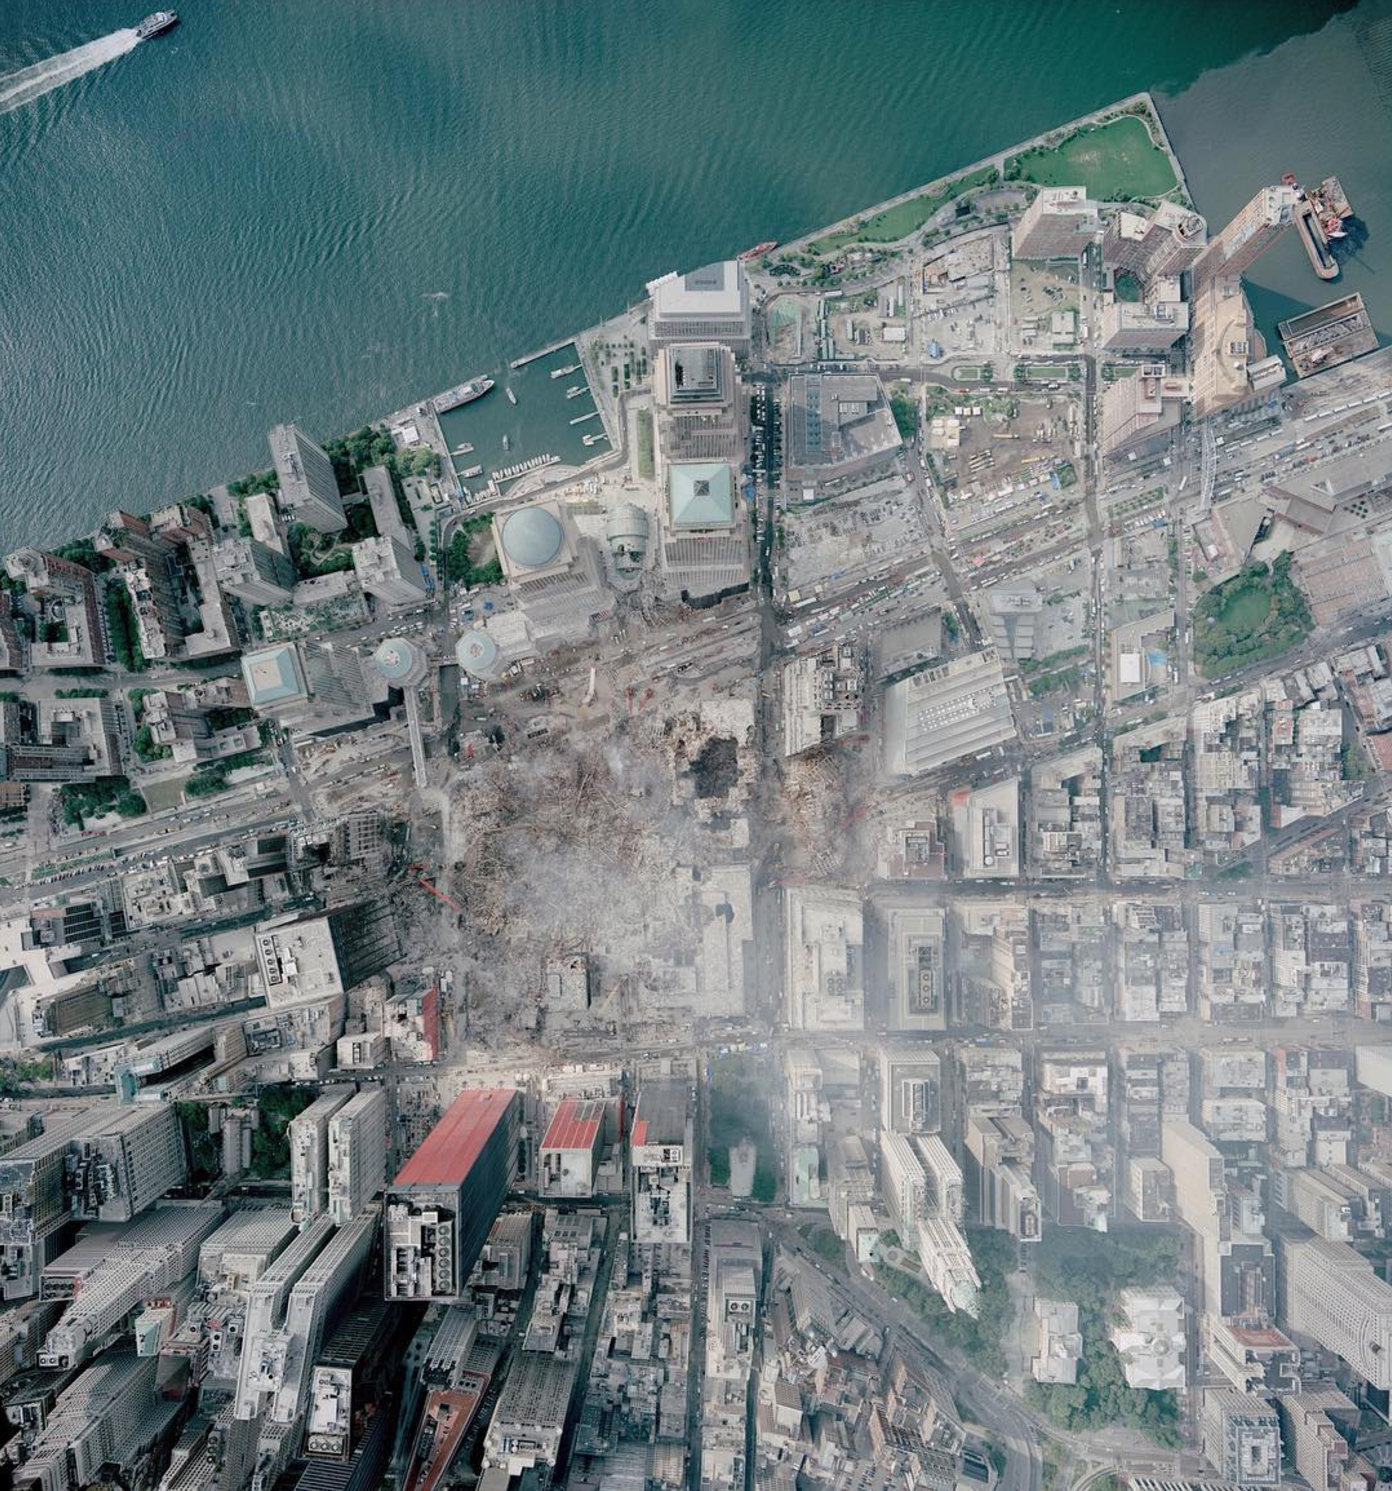 Today is the 16th anniversary of the September 11th attacks in the United States. This overview was captured above Ground Zero in downtown Manhattan on September 23, 2001. In the face of such darkness and destruction, I hope we can use this memory as an opportunity to recognize how essential it is to foster an appreciation and love for our fellow man.  📷: NOAA